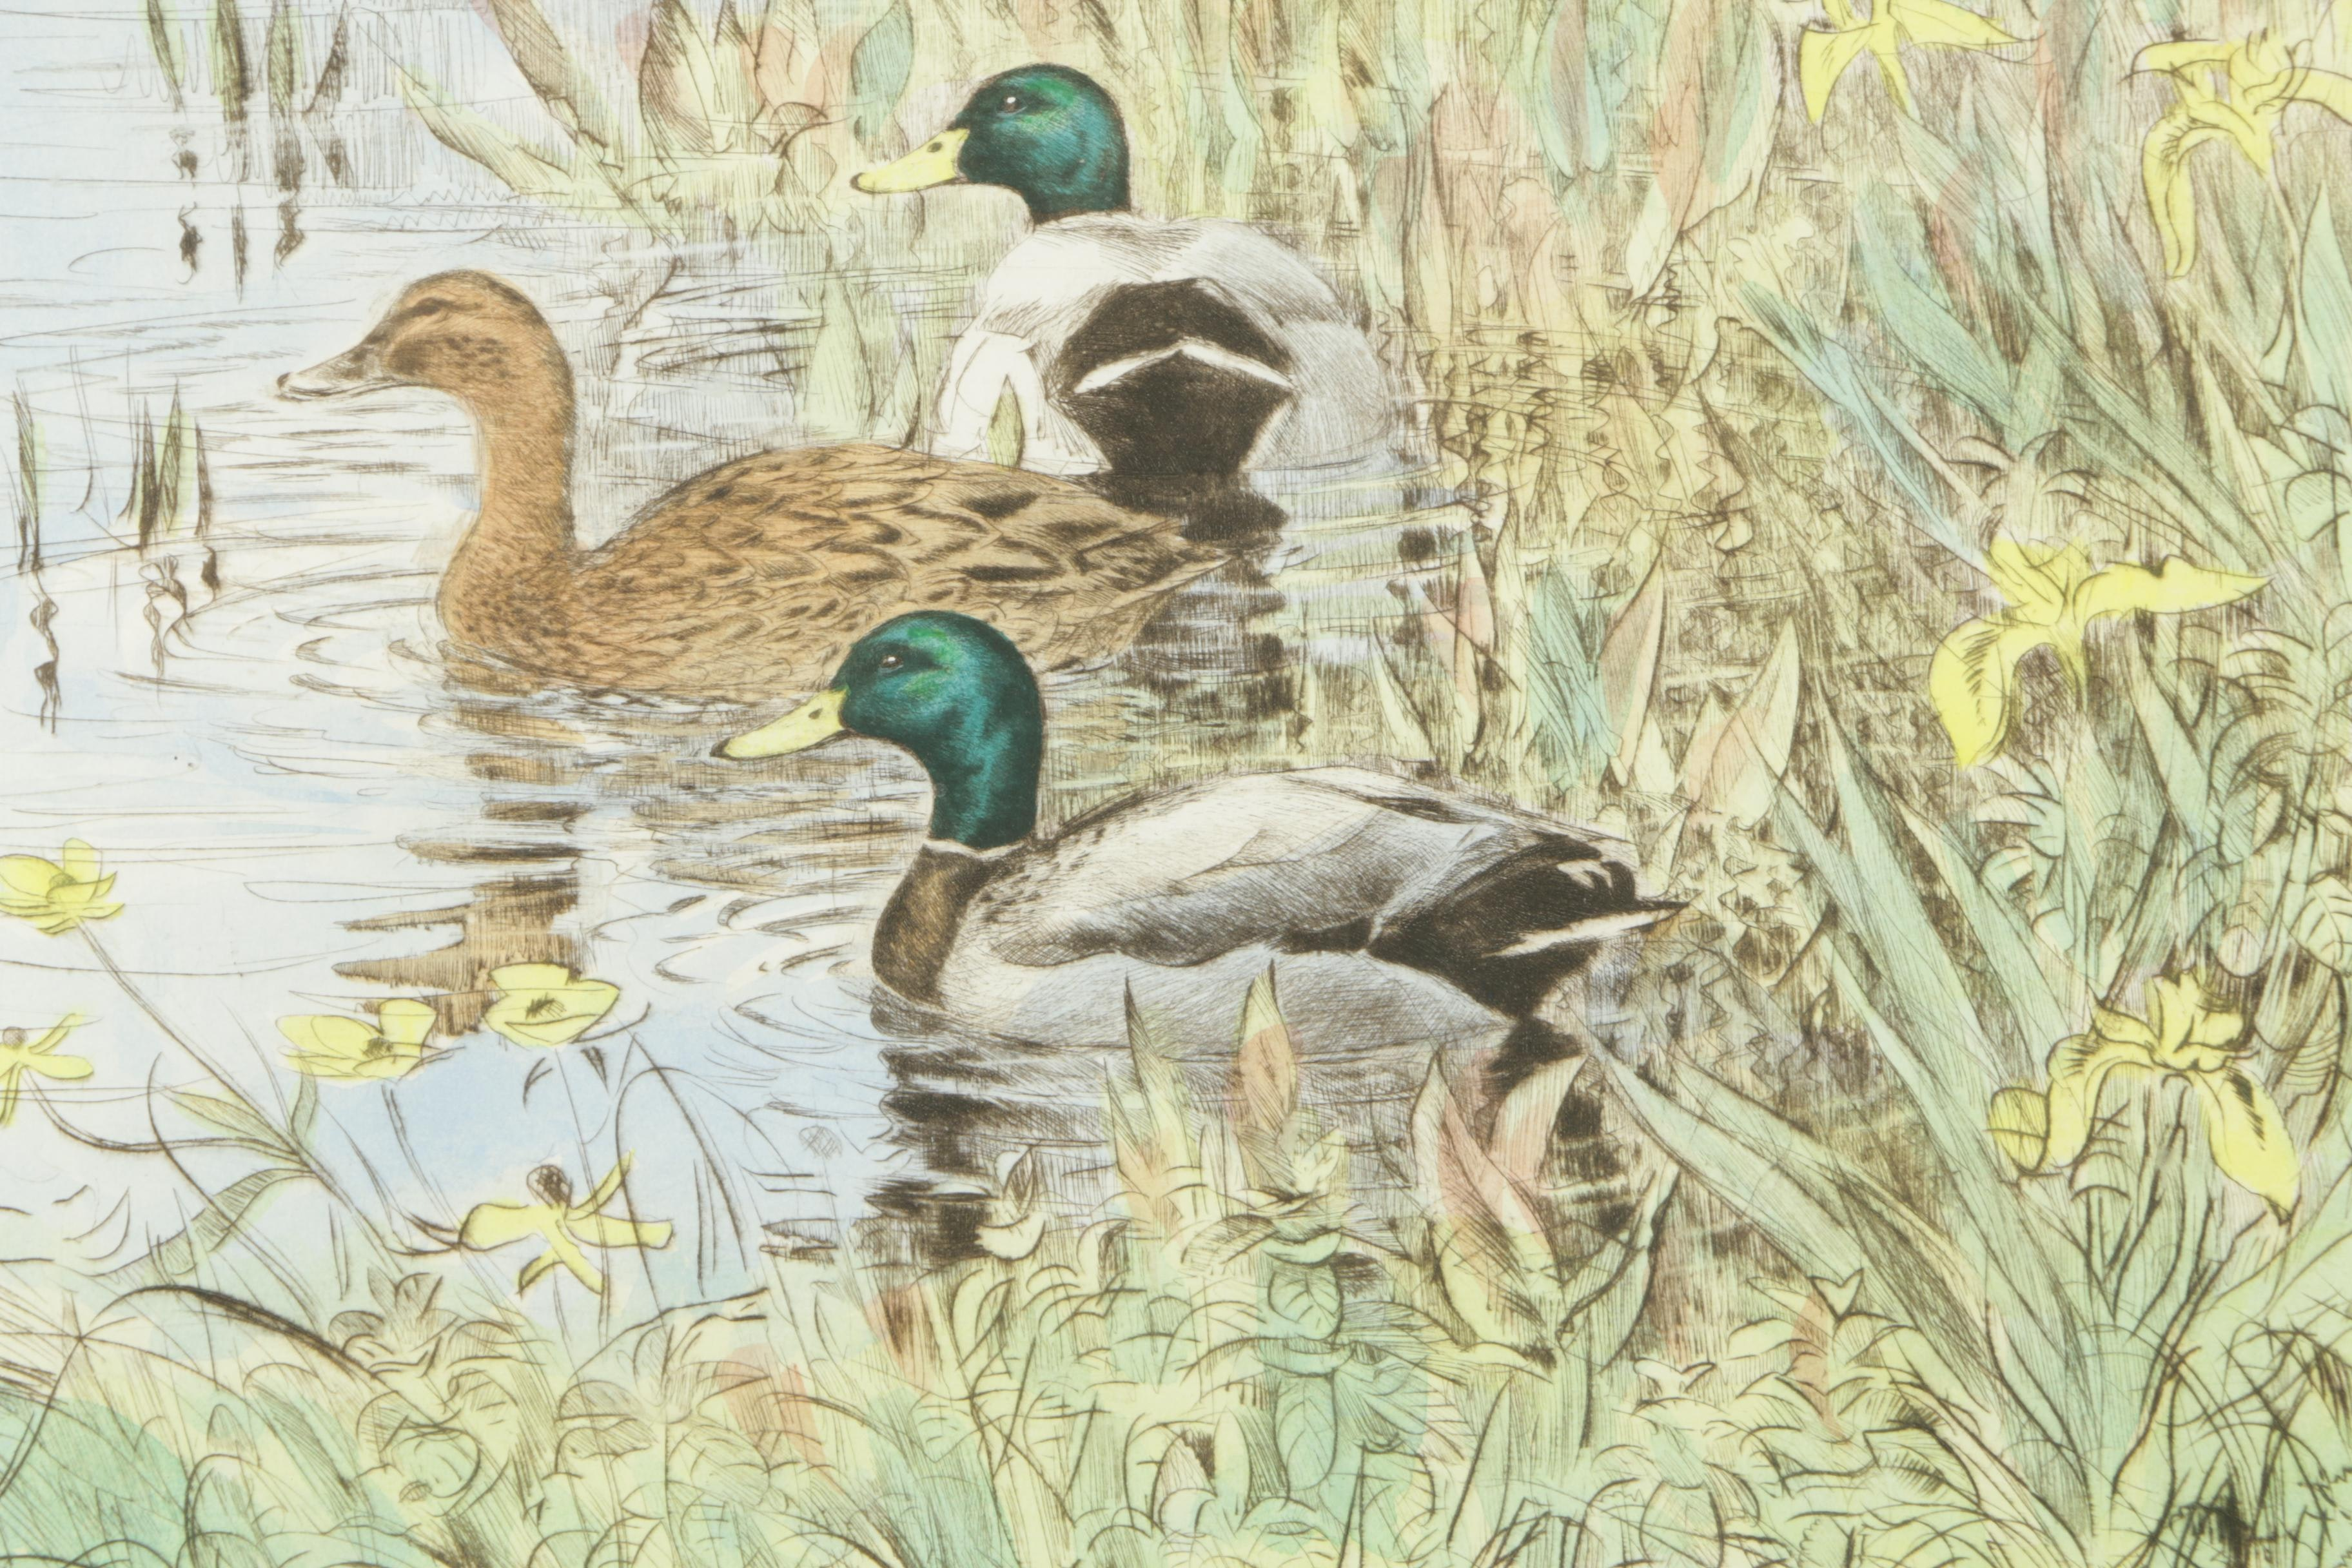 Hand Colored Drypoint Etching On Paper Quot Mallards On The